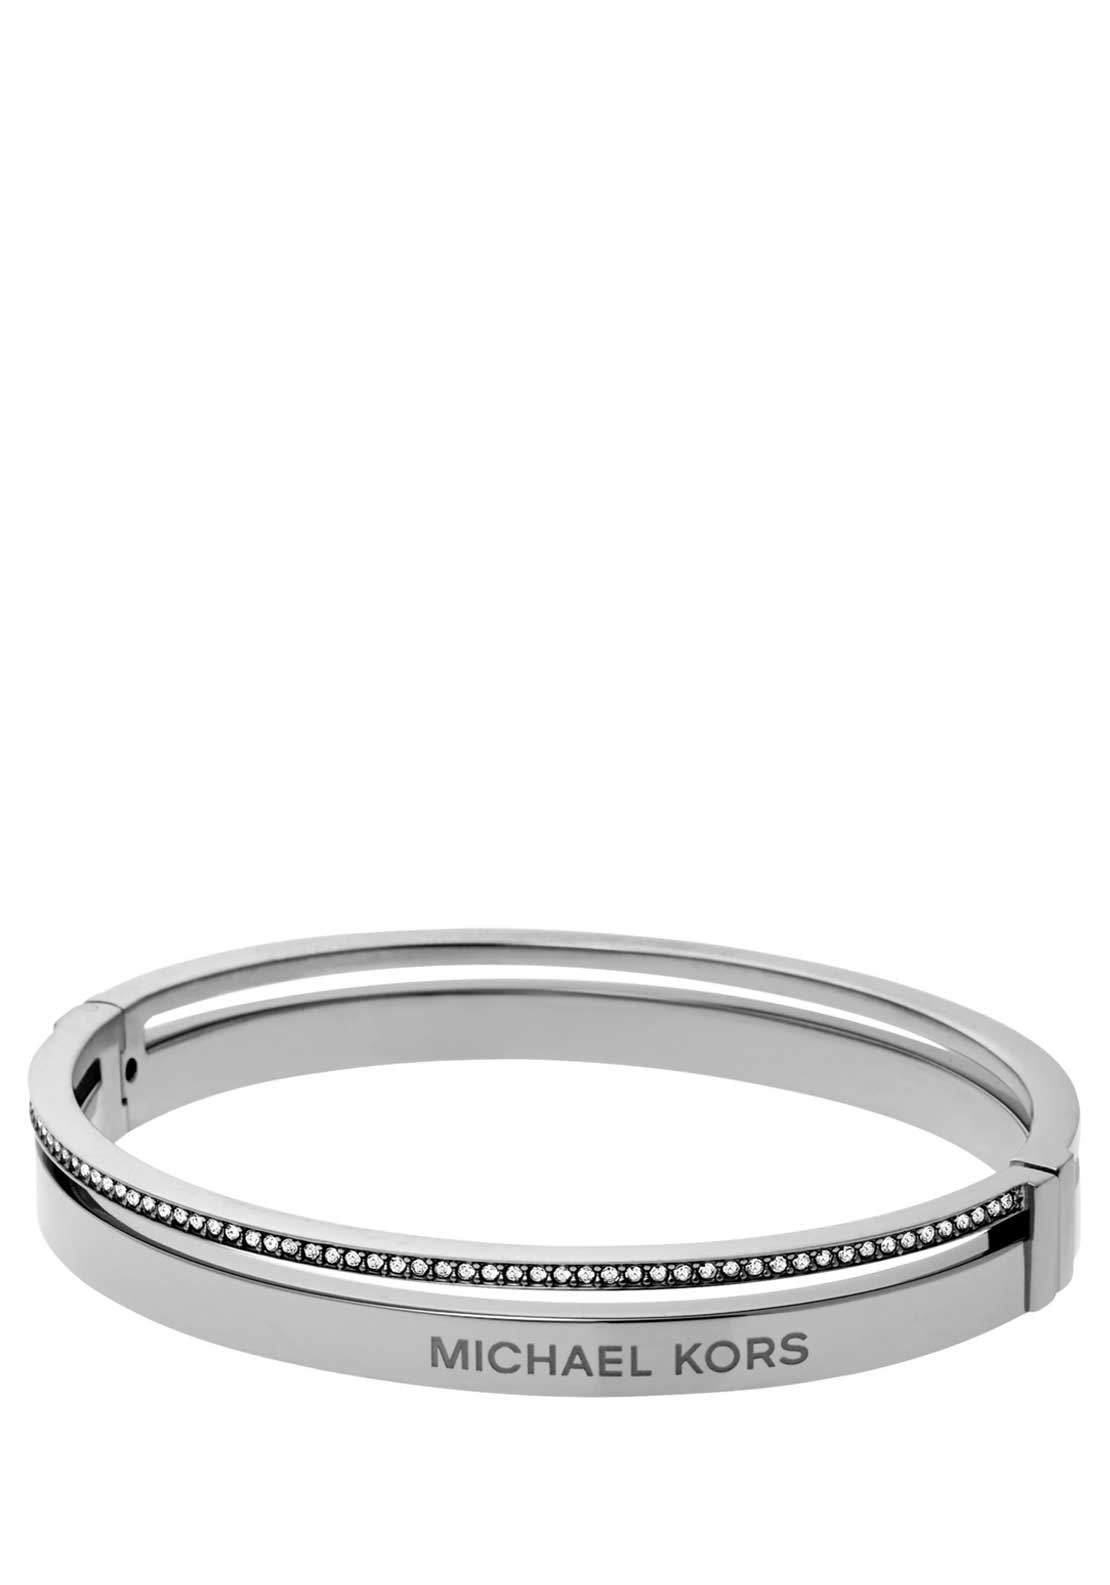 Michael Kors Ladies Brilliance Crystal set Bangle, Silver